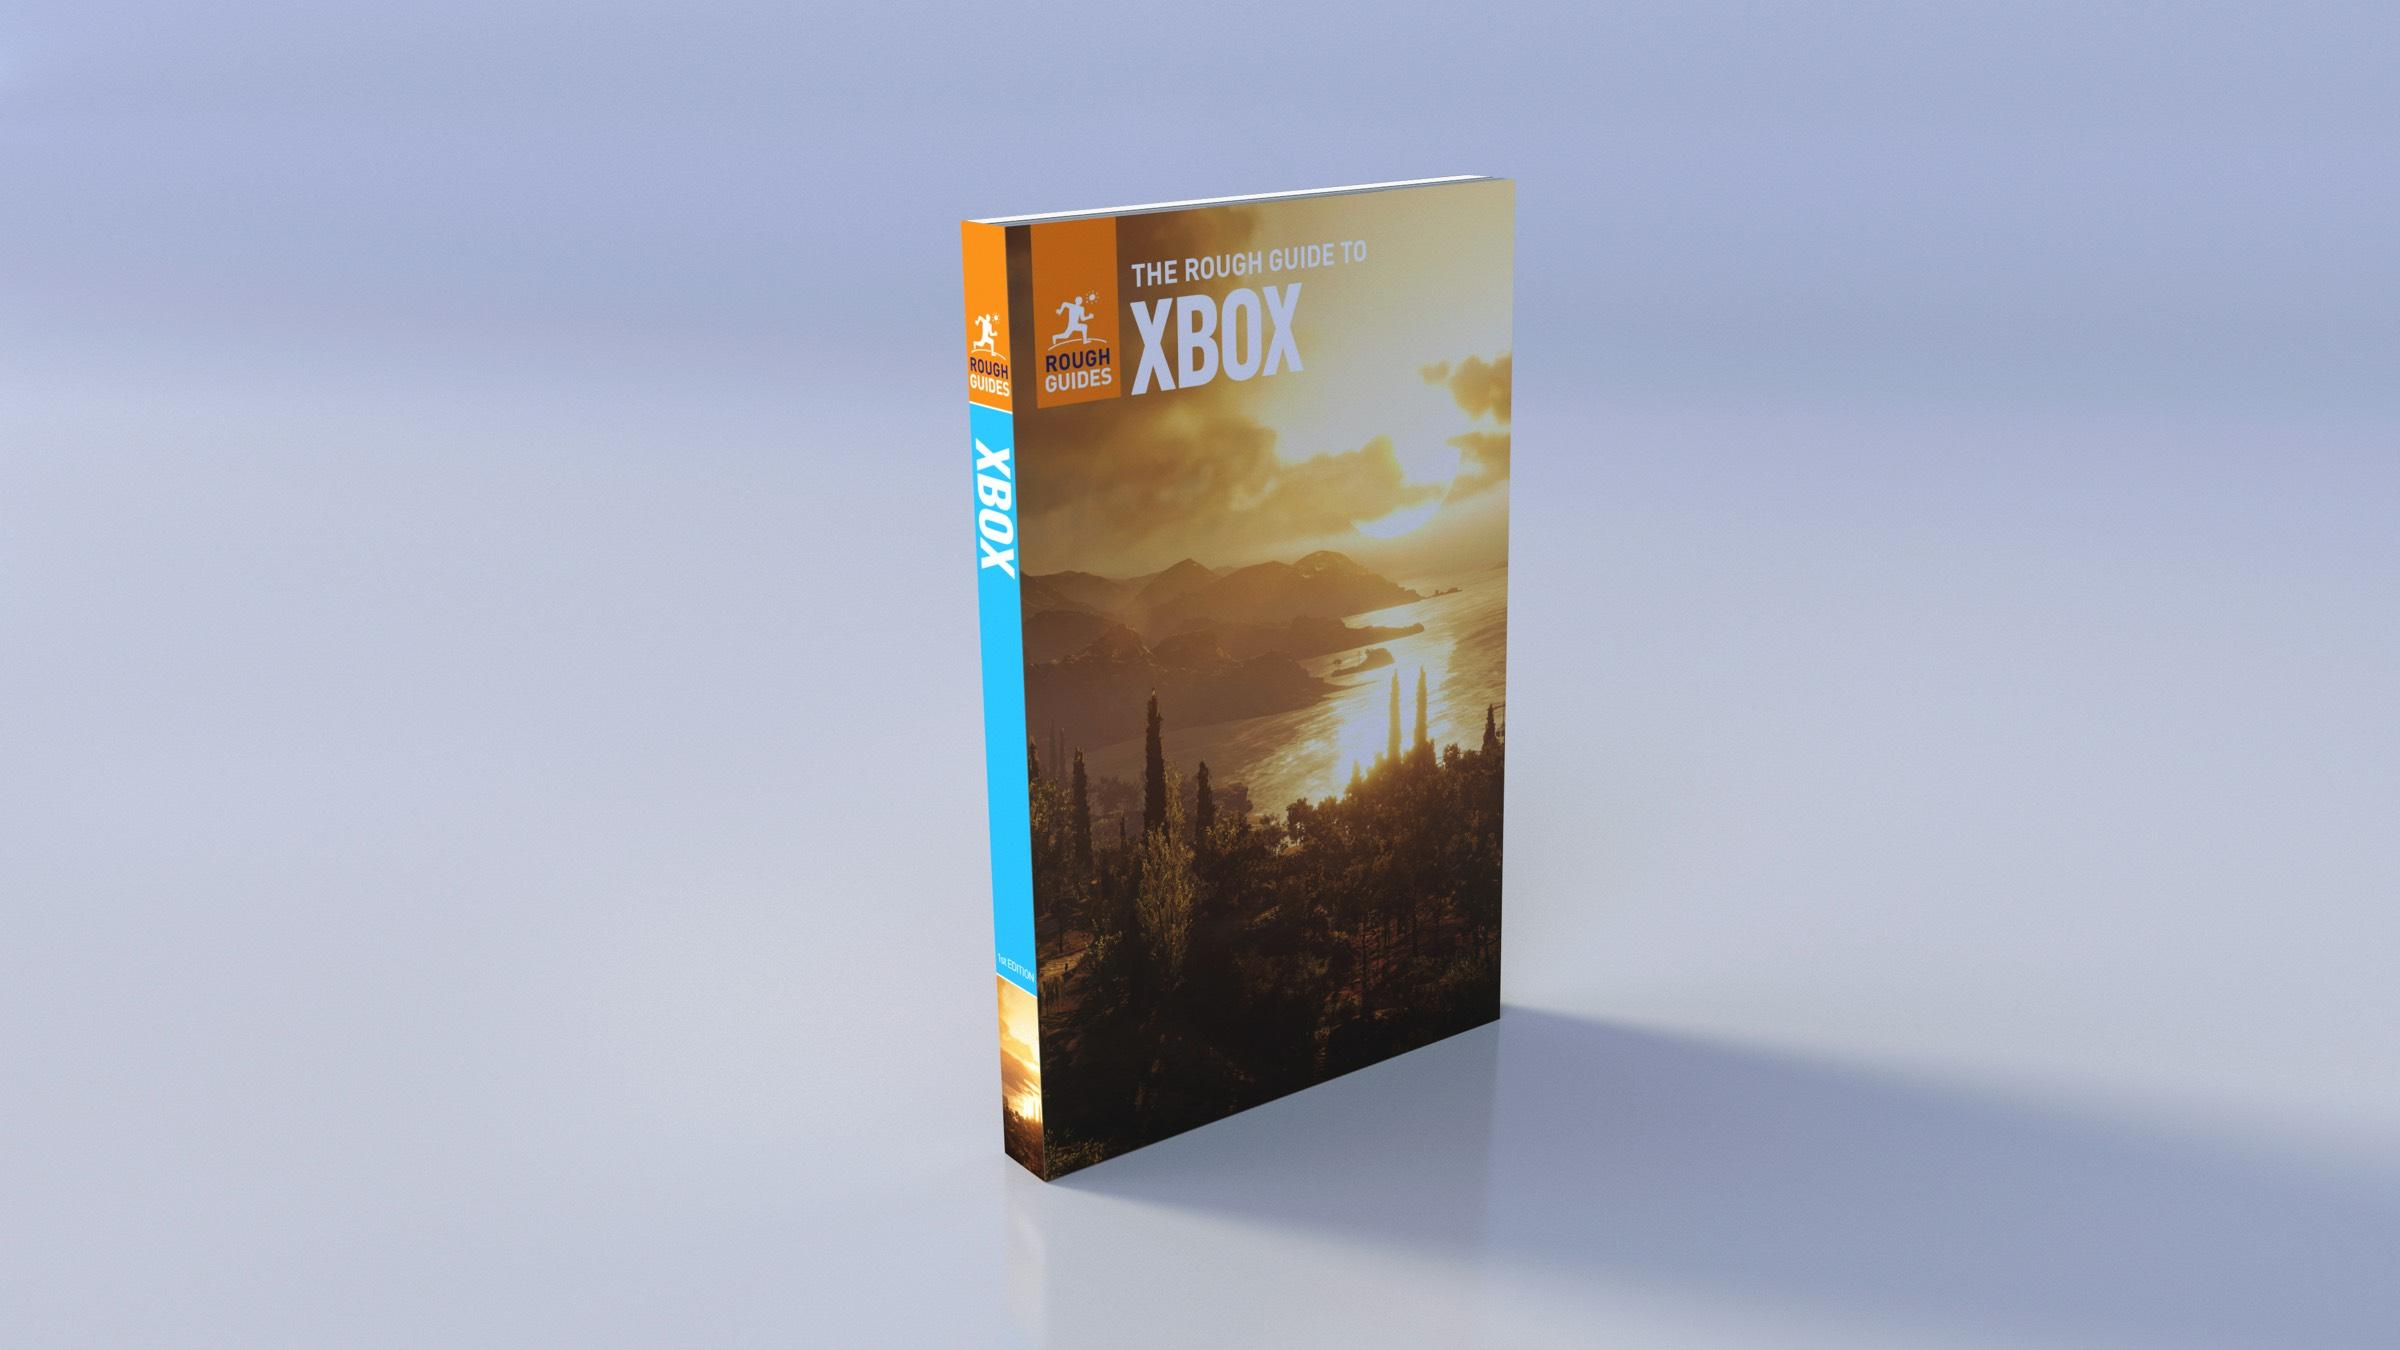 Xbox: The Rough Guide to Xbox